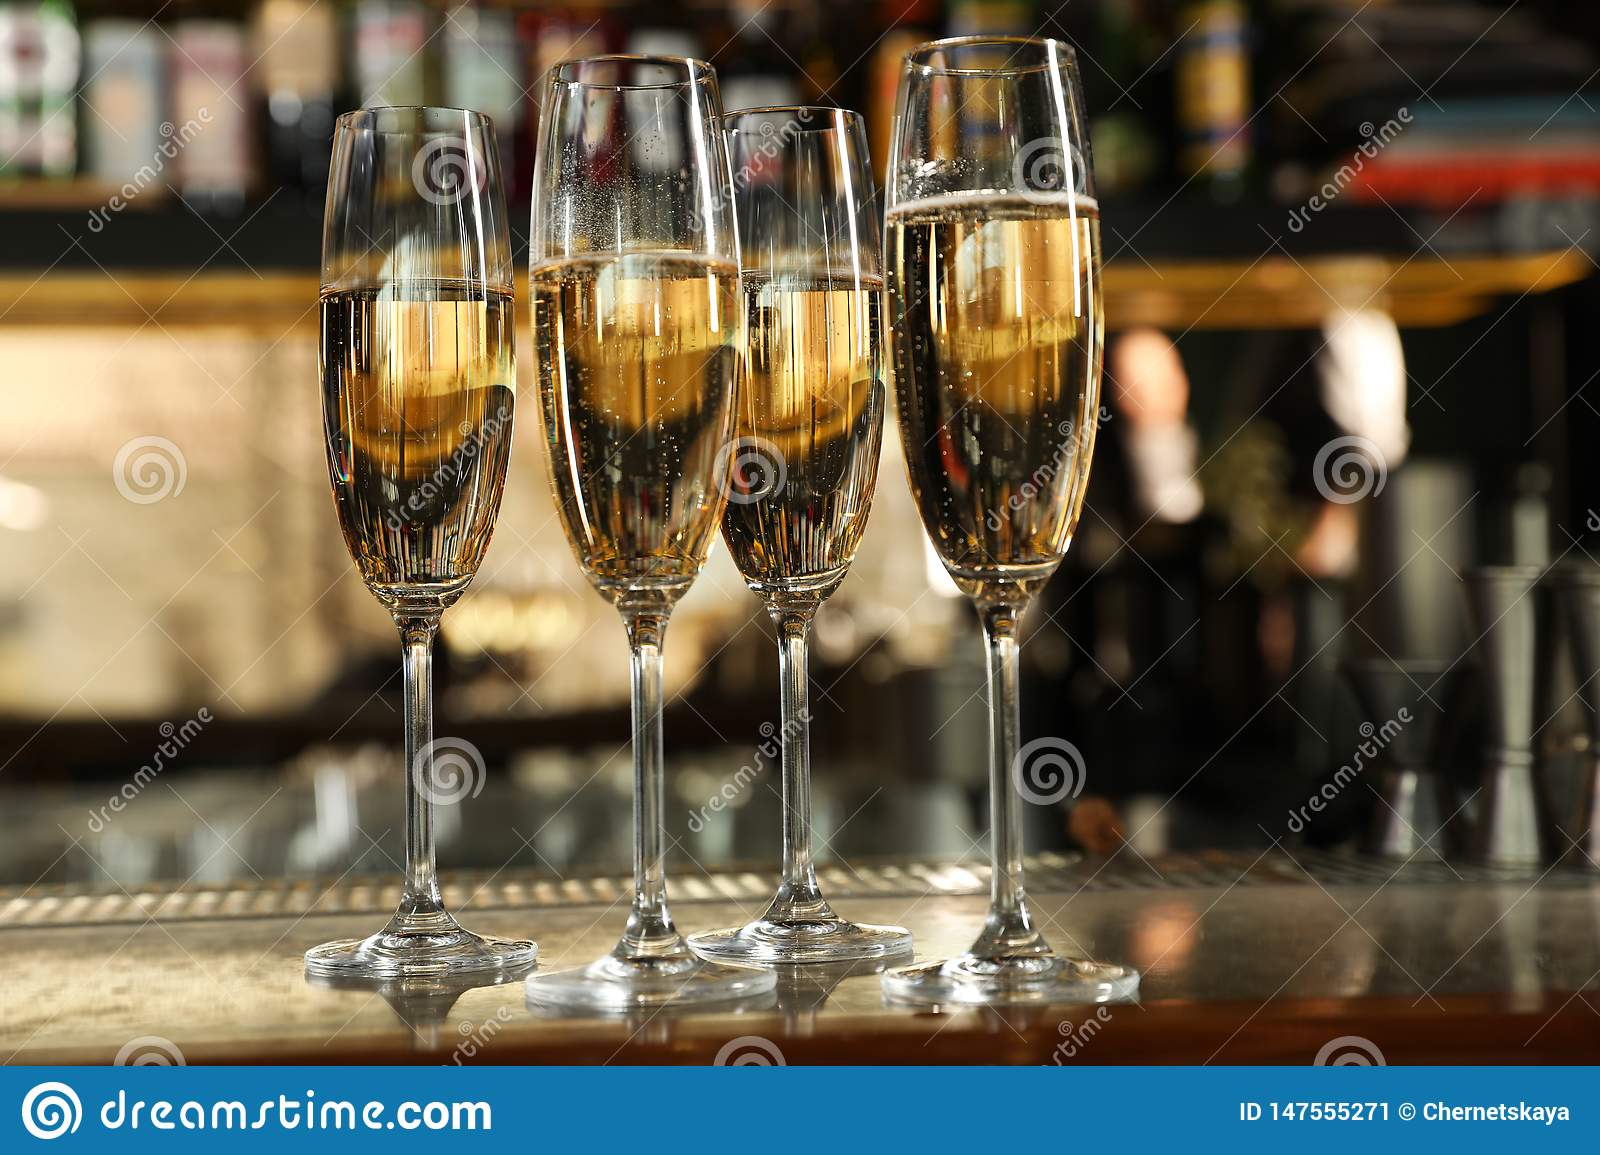 Glasses of champagne on counter